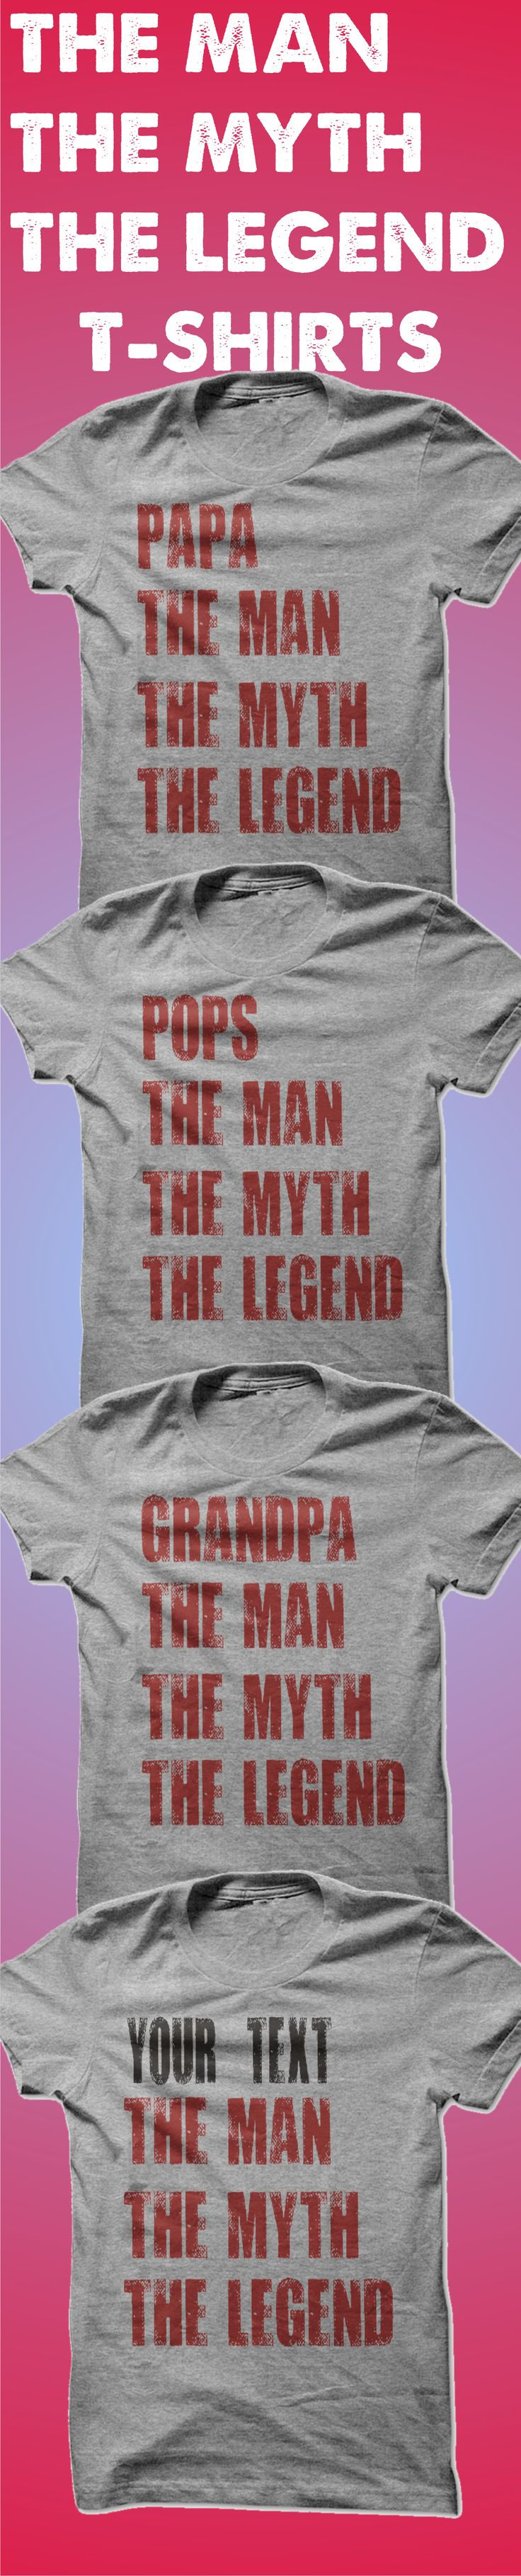 The Man The Myth The Legend T-Shirts. Papa, Pops, Grandpa. You can even customize with whatever name you want. Visit our shop!